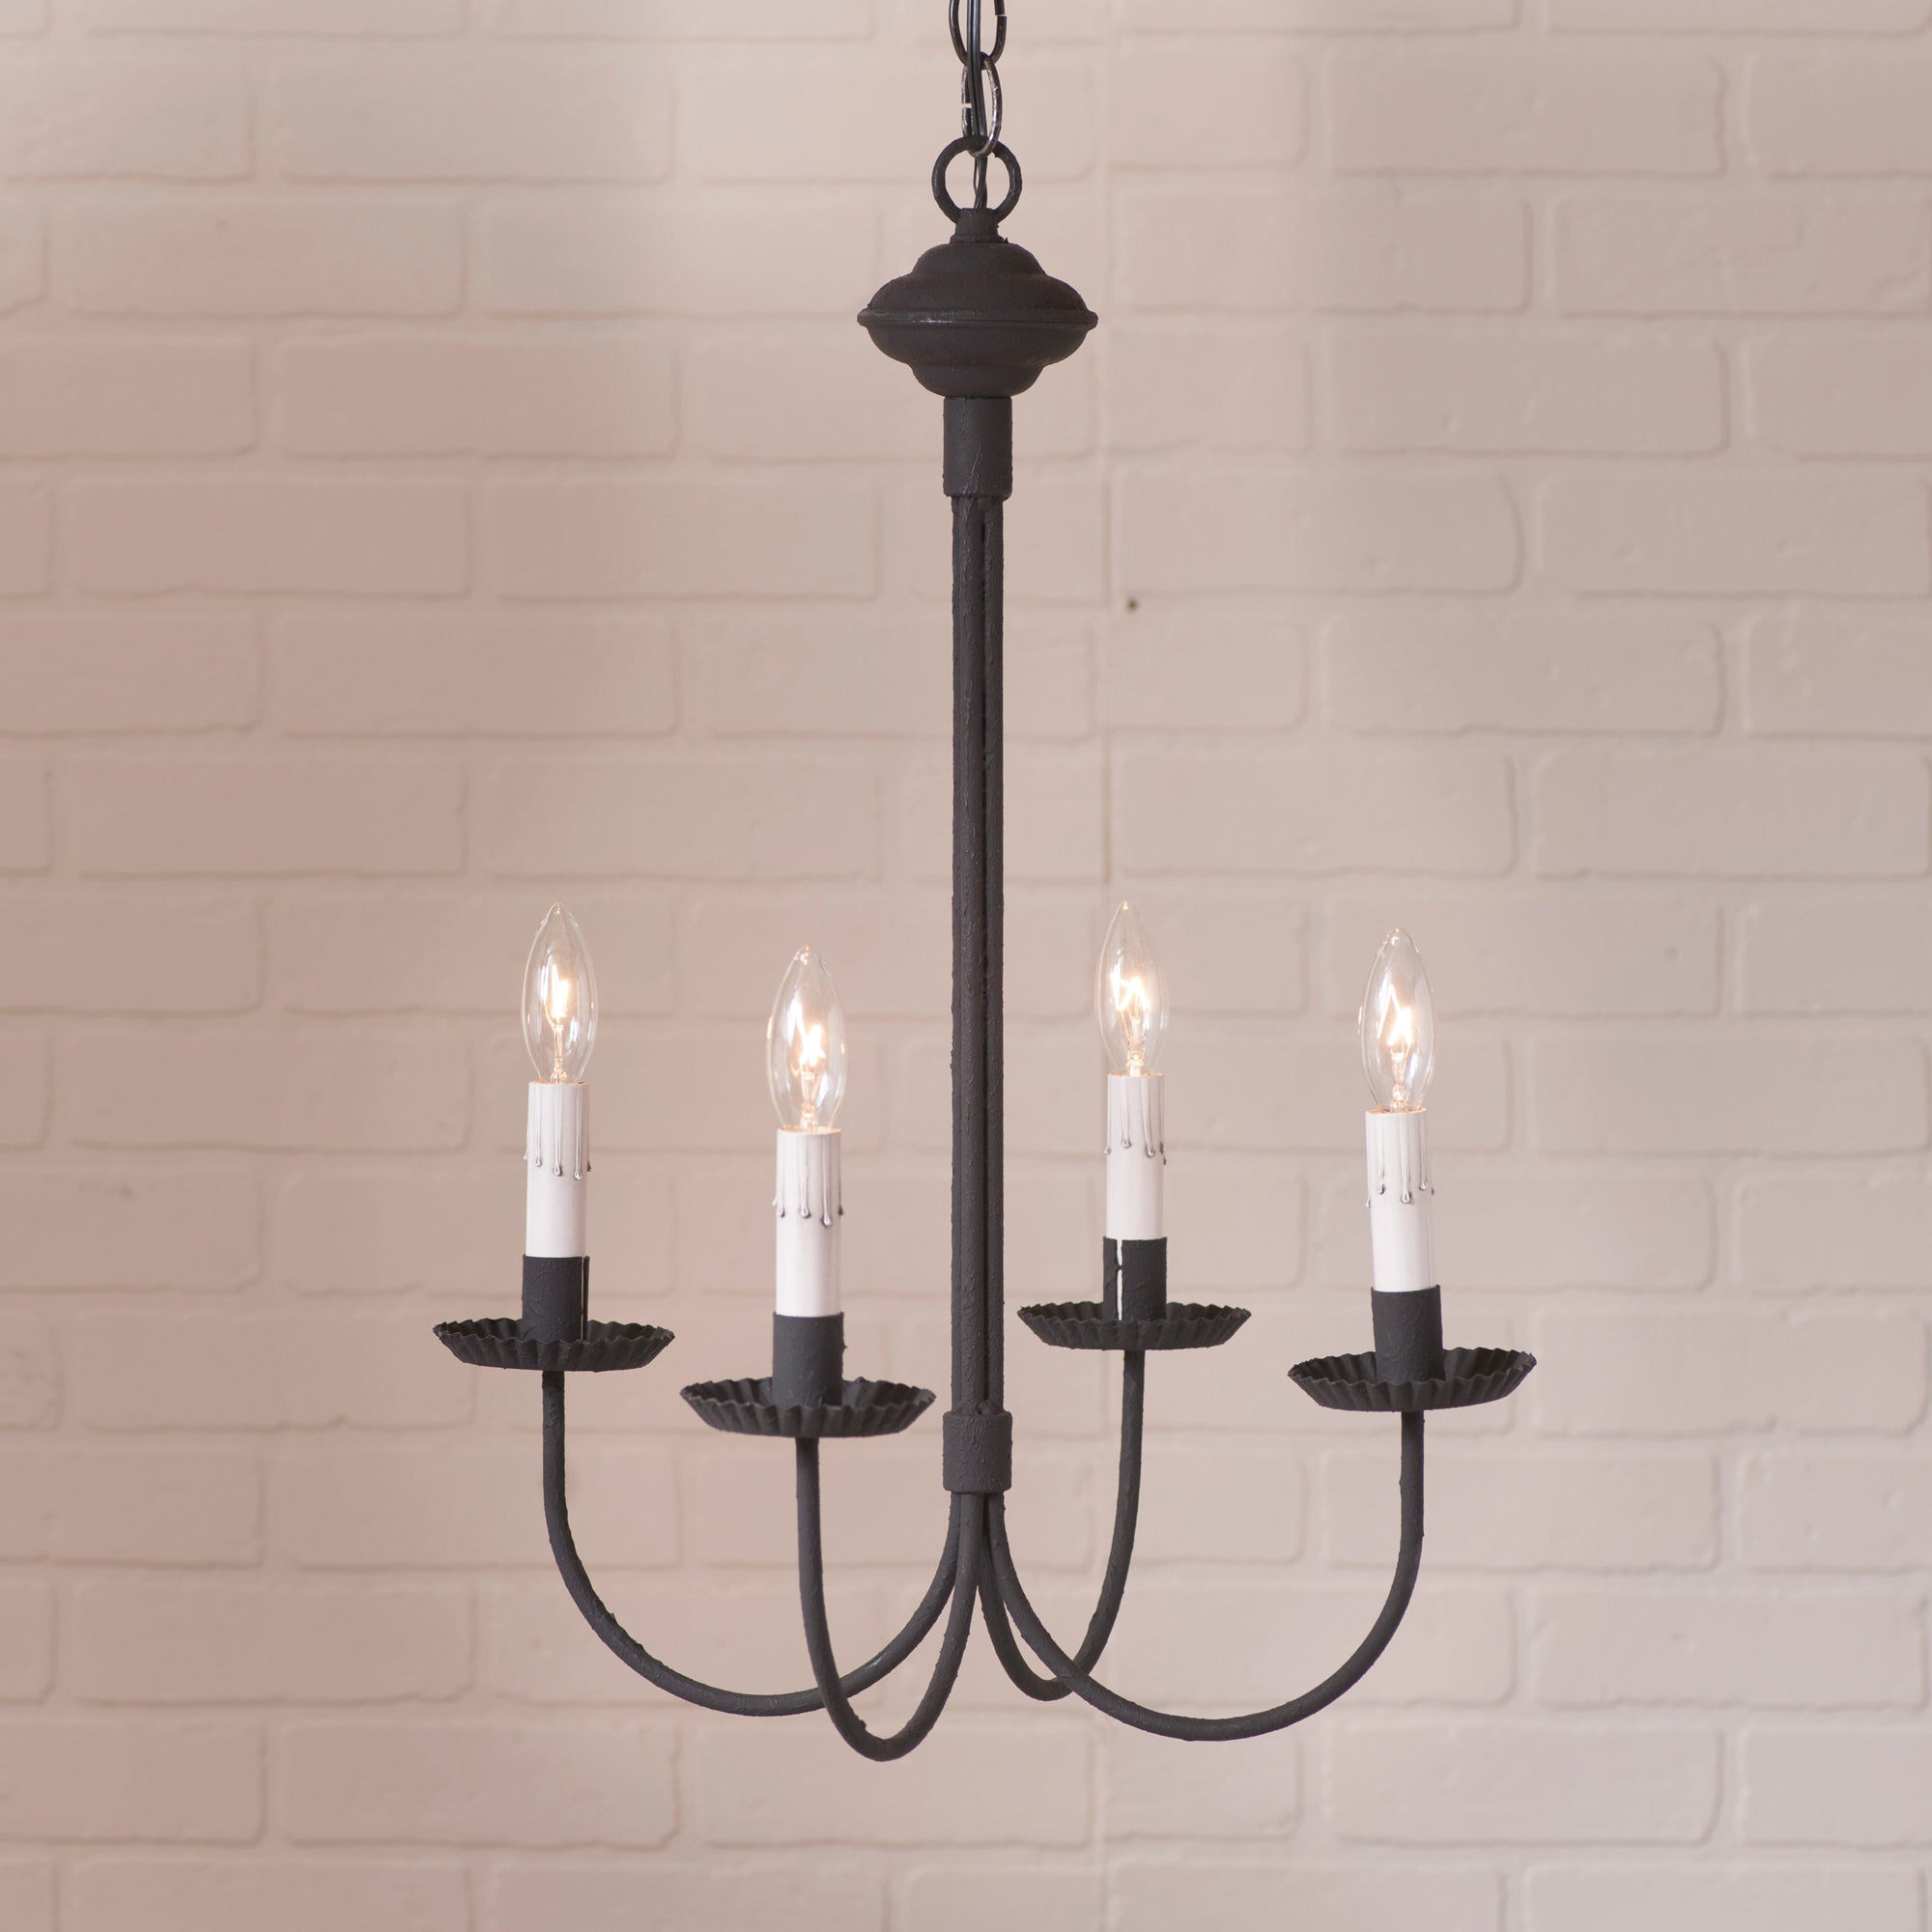 4 arm grandview chandelier with gray sleeves allysons place 4 arm grandview chandelier with gray sleeves aloadofball Choice Image